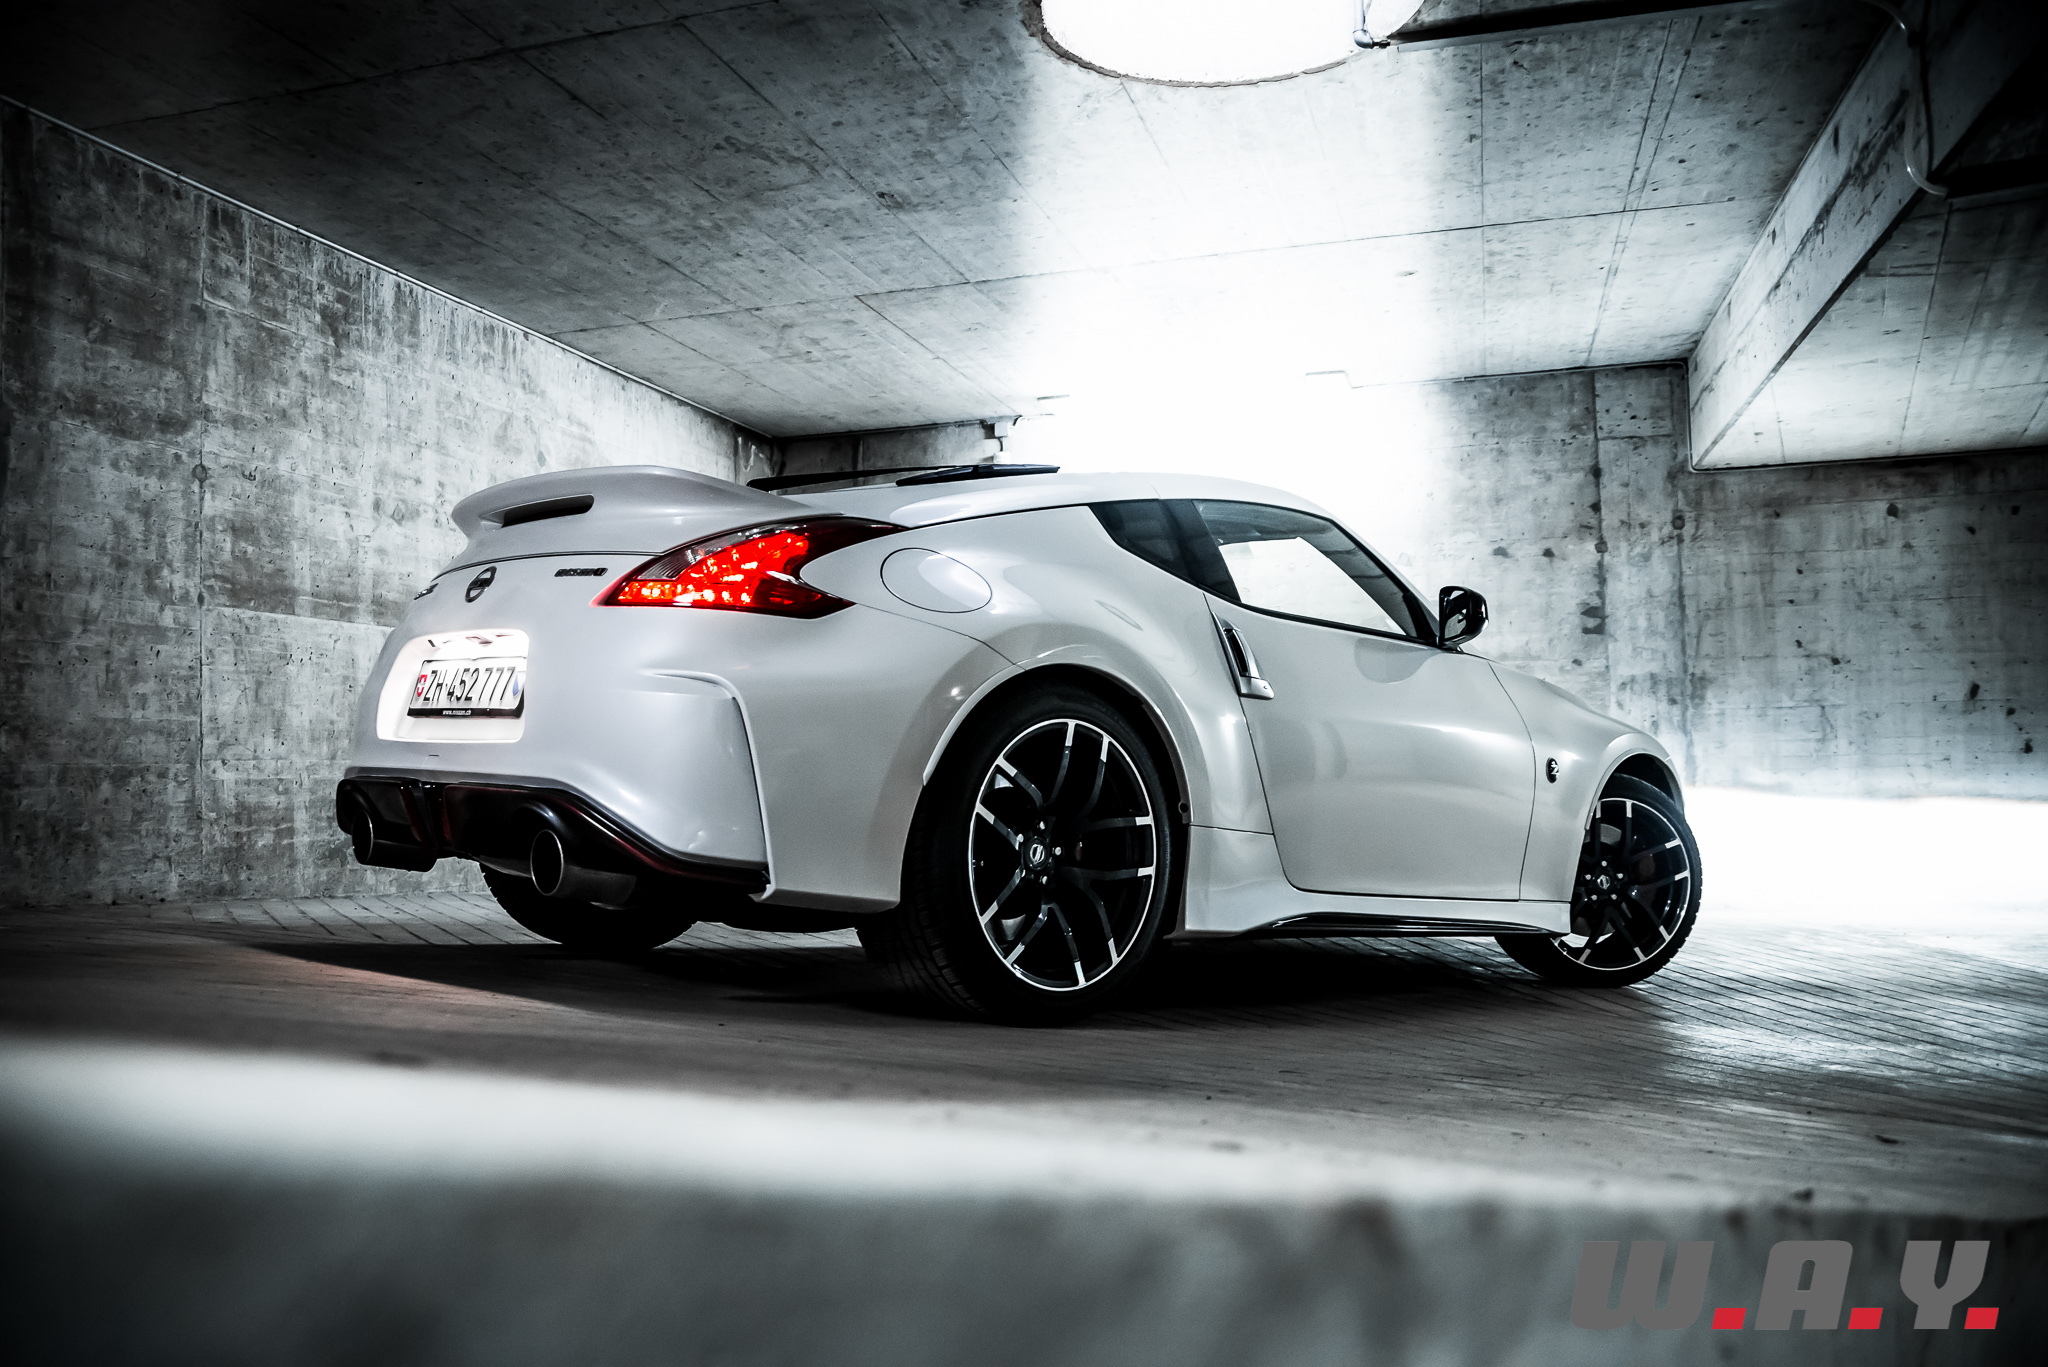 essai nissan 370z nismo affaire pour puriste wheels and. Black Bedroom Furniture Sets. Home Design Ideas